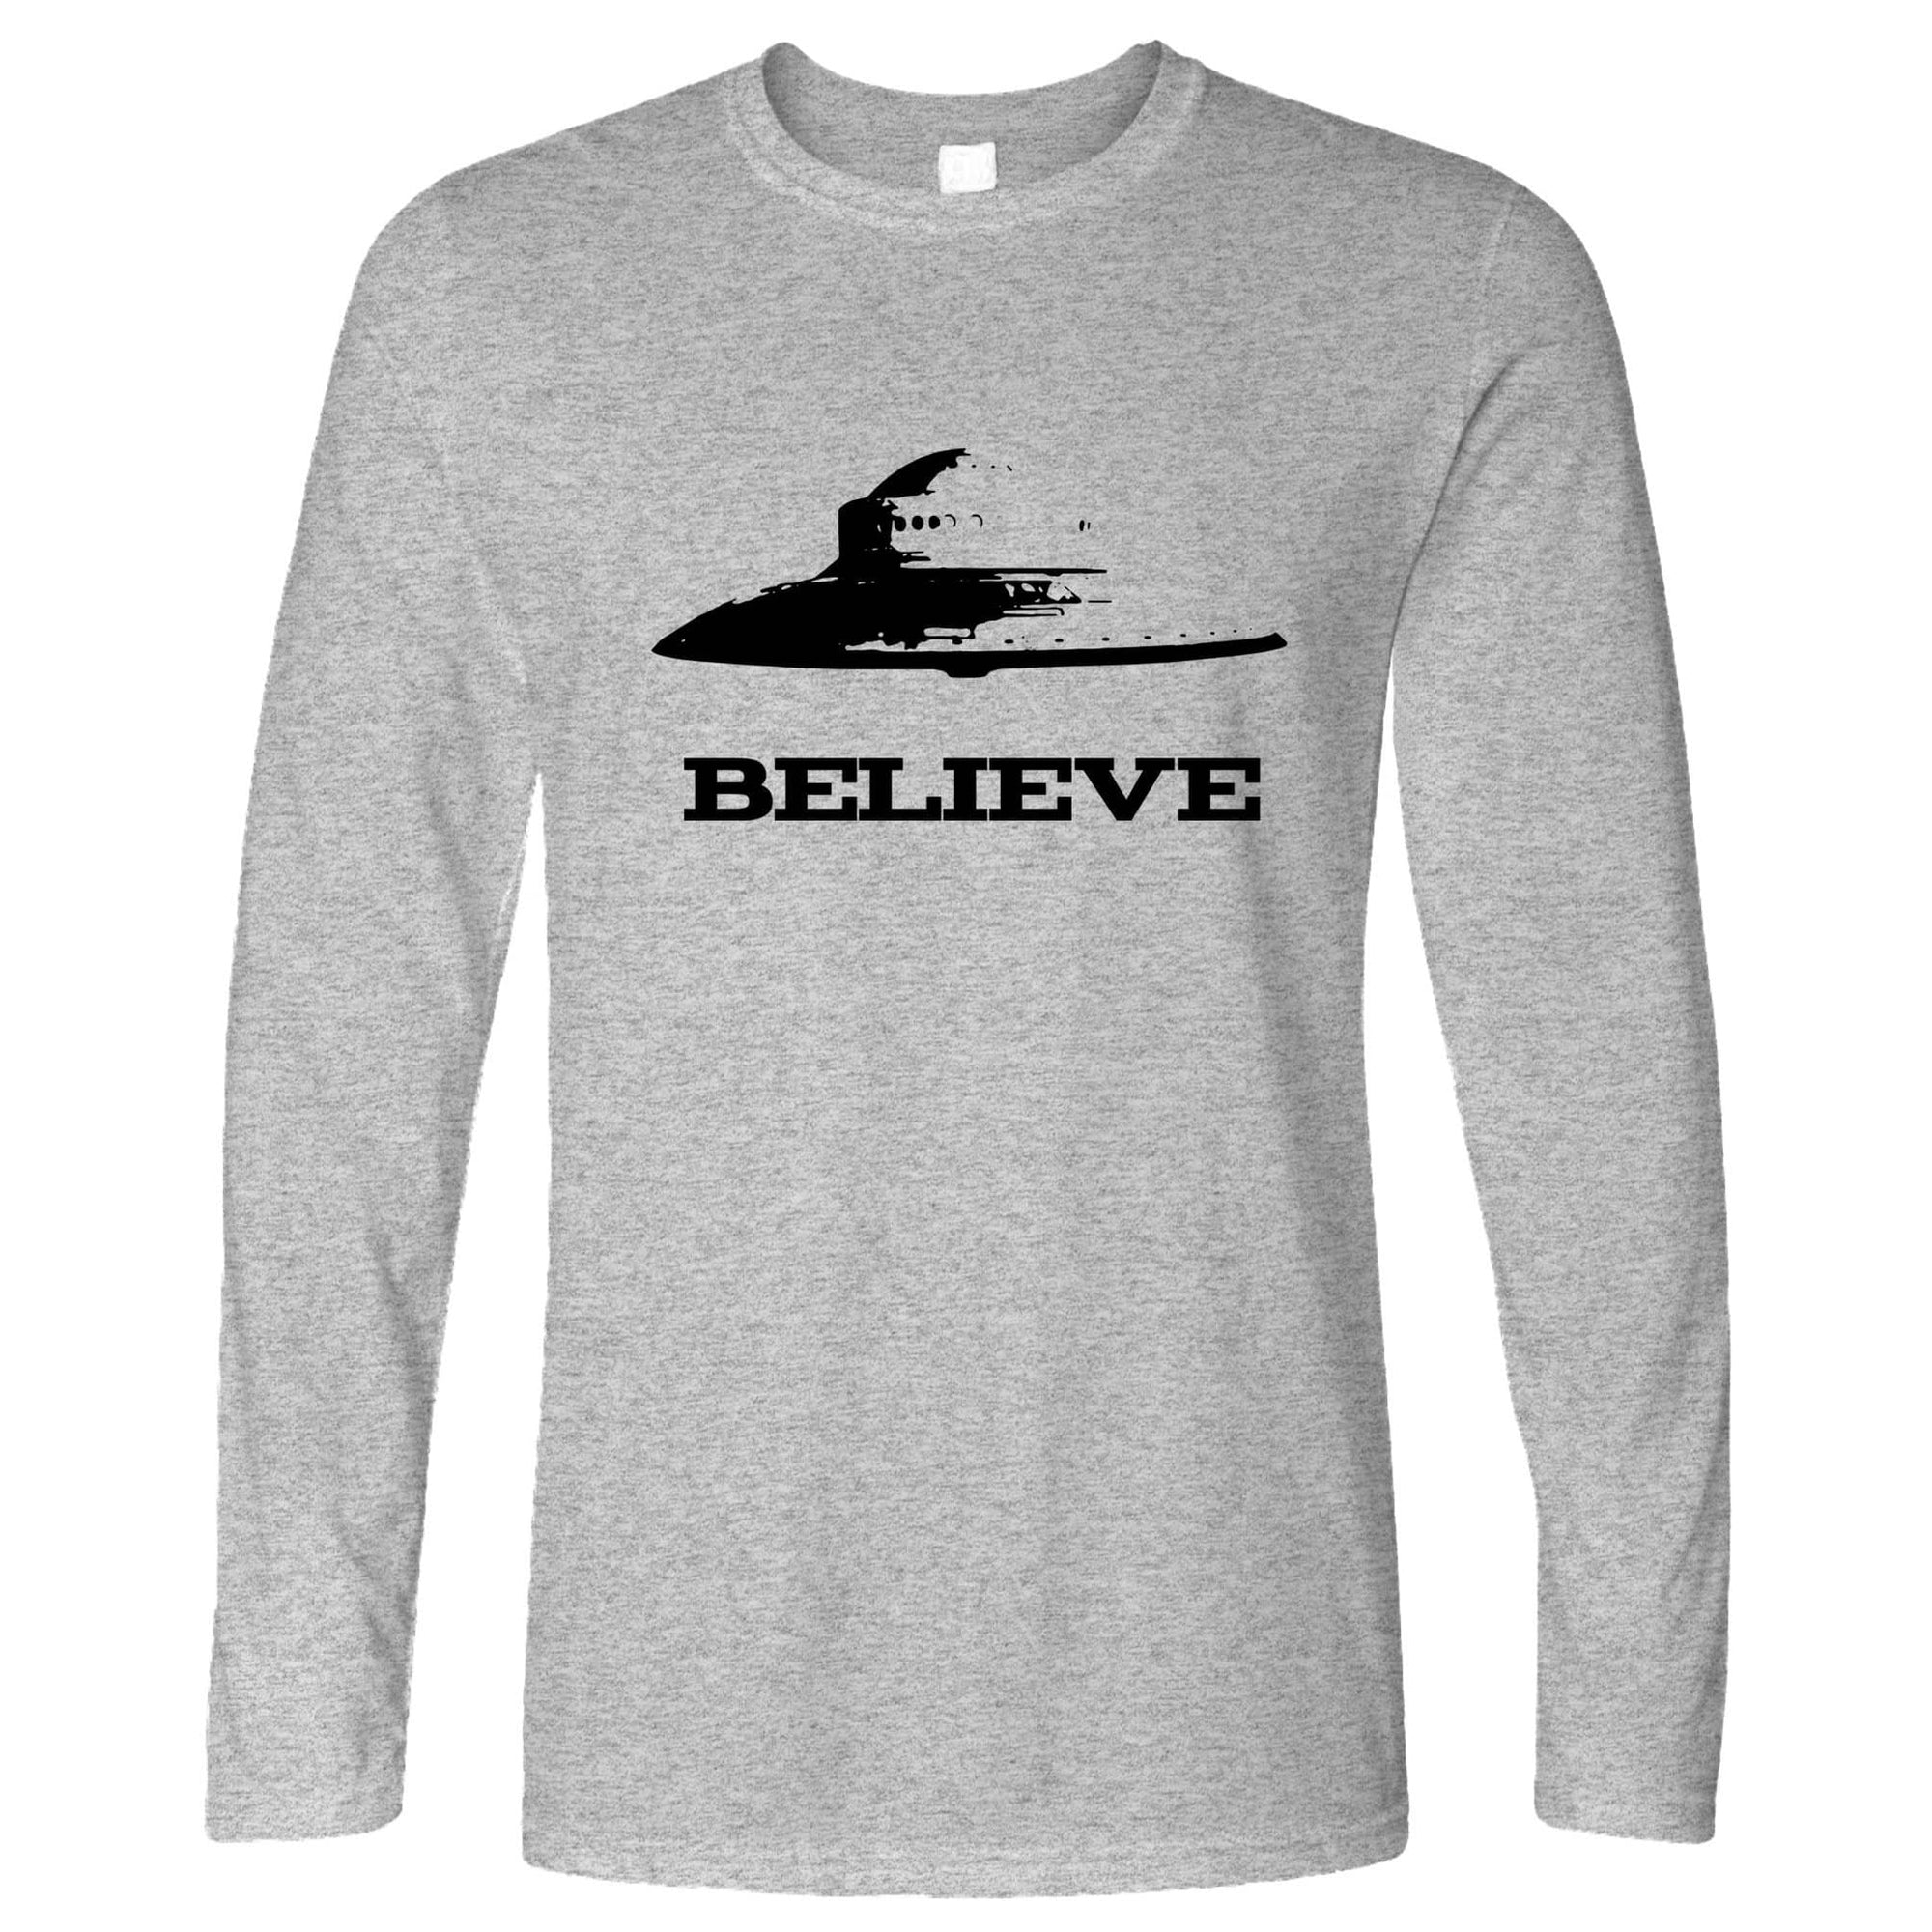 Alien Long Sleeve Believe in UFO Flying Saucers T-Shirt